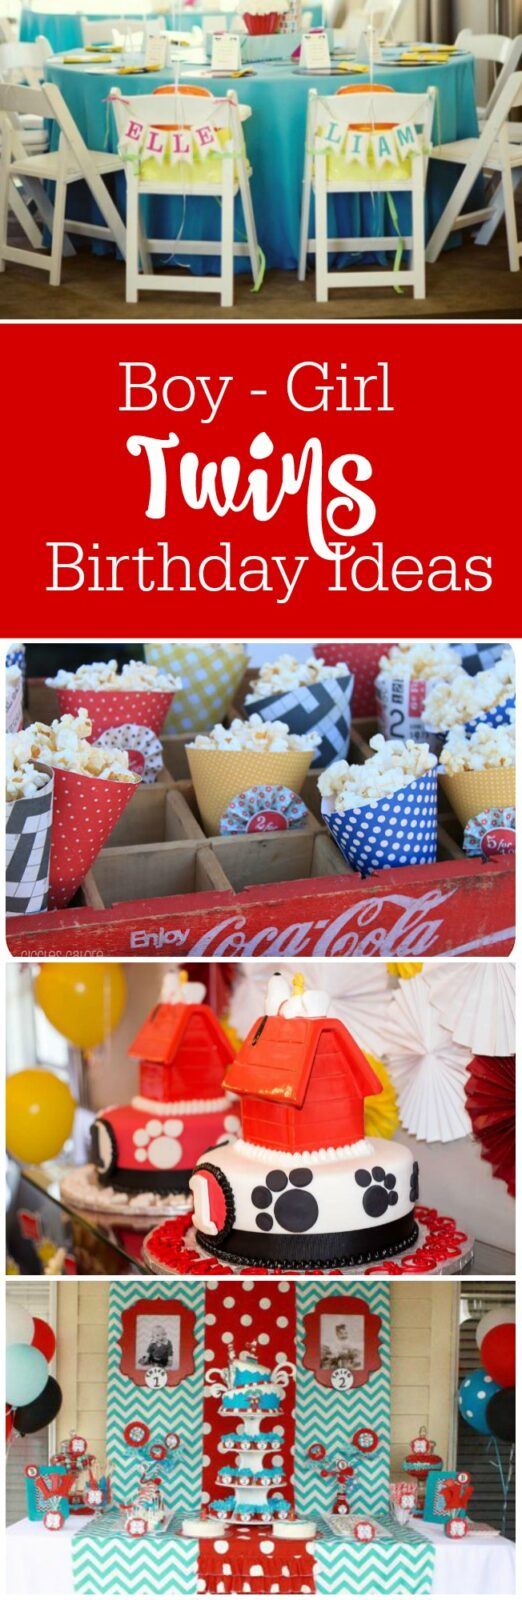 Twins: Birthday Party Ideas for Boy Girl Twins